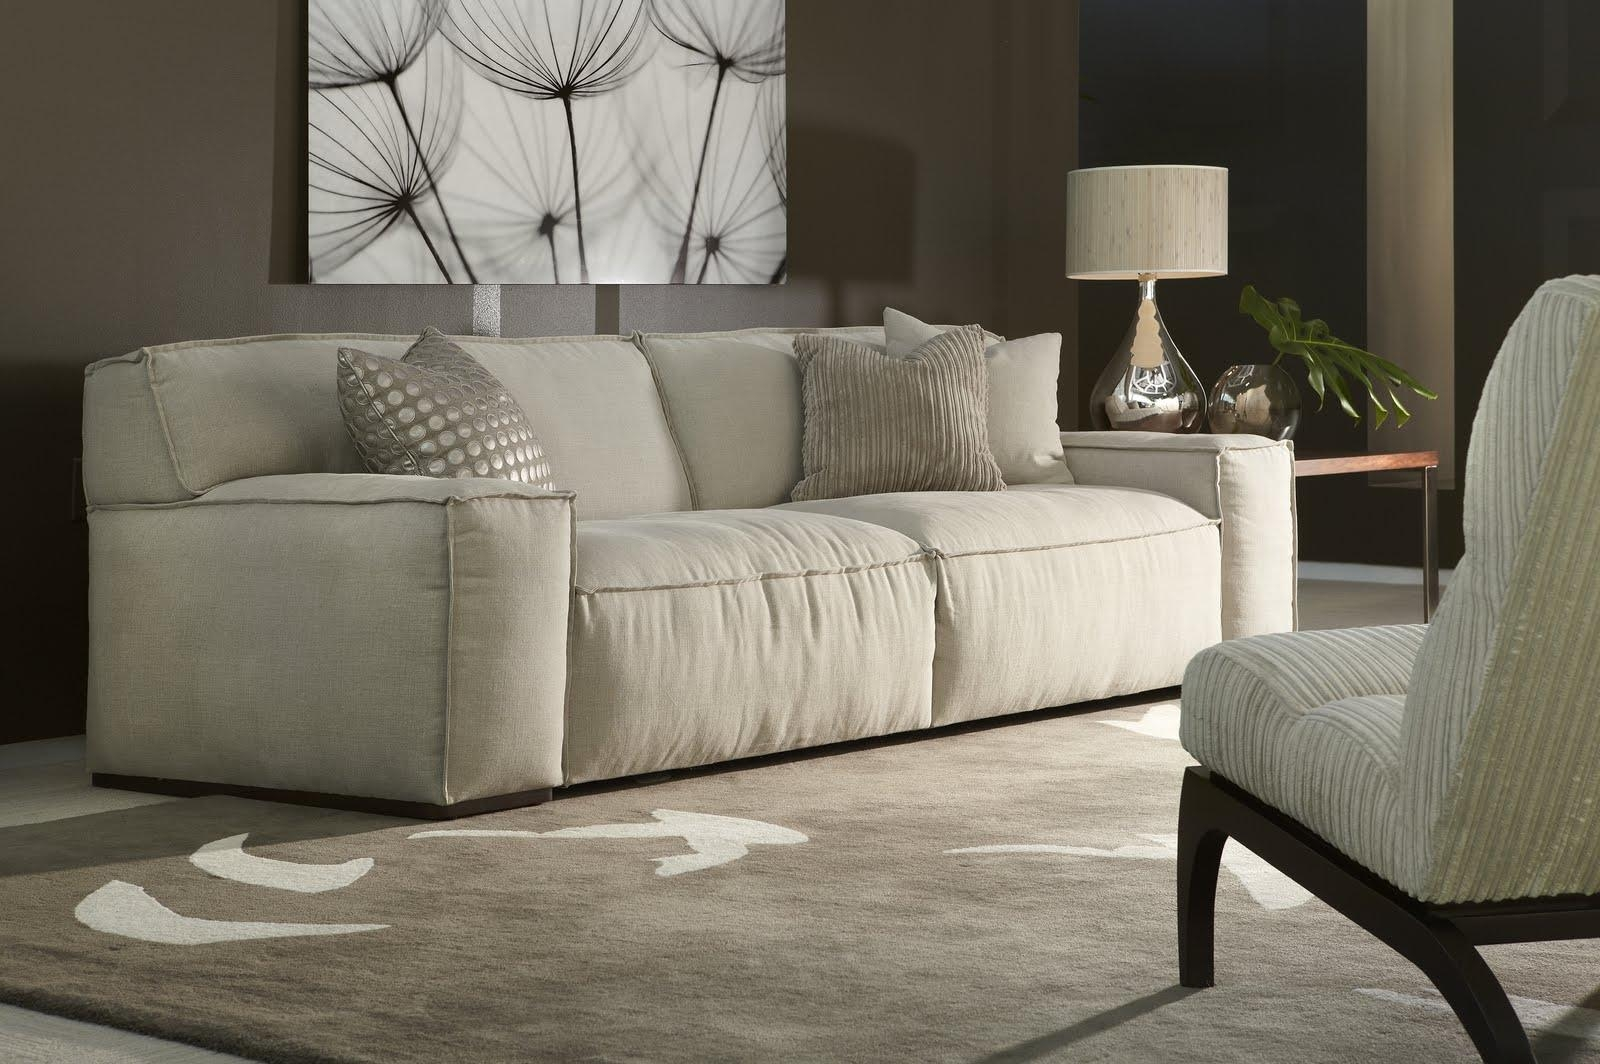 Sofas Center : Excellent Down Sectional Sofa Images Concept For Down Filled Sofas And Sectionals (Image 13 of 15)